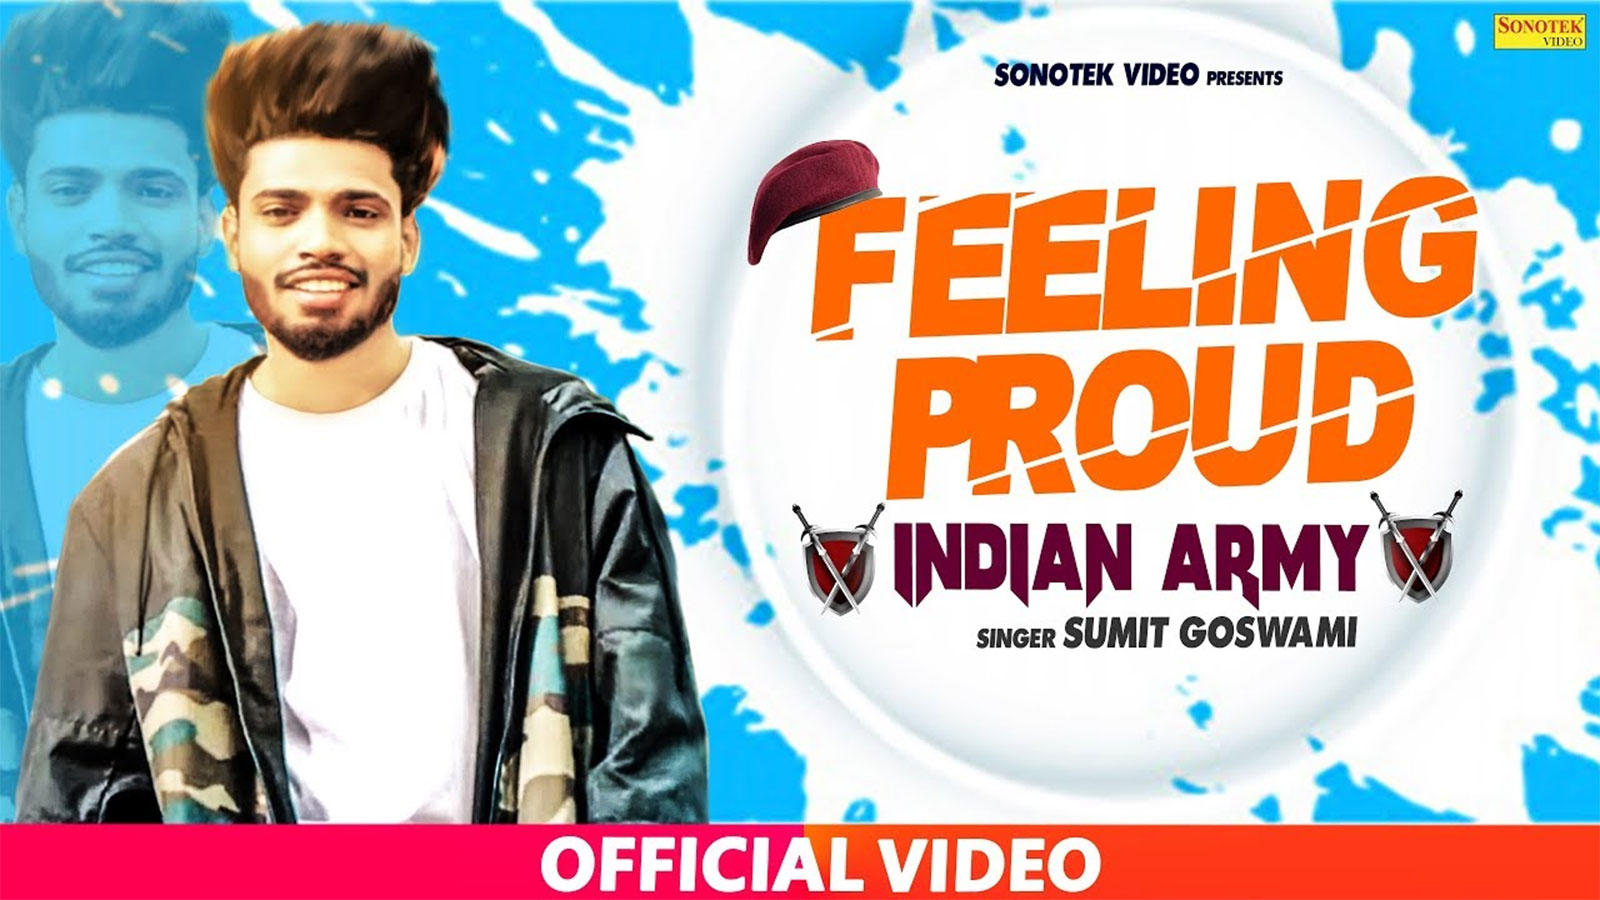 Latest Haryanvi Song Feeling Proud Indian Aarmi Sung By Sumit Goswami Haryanvi Video Songs Times Of India